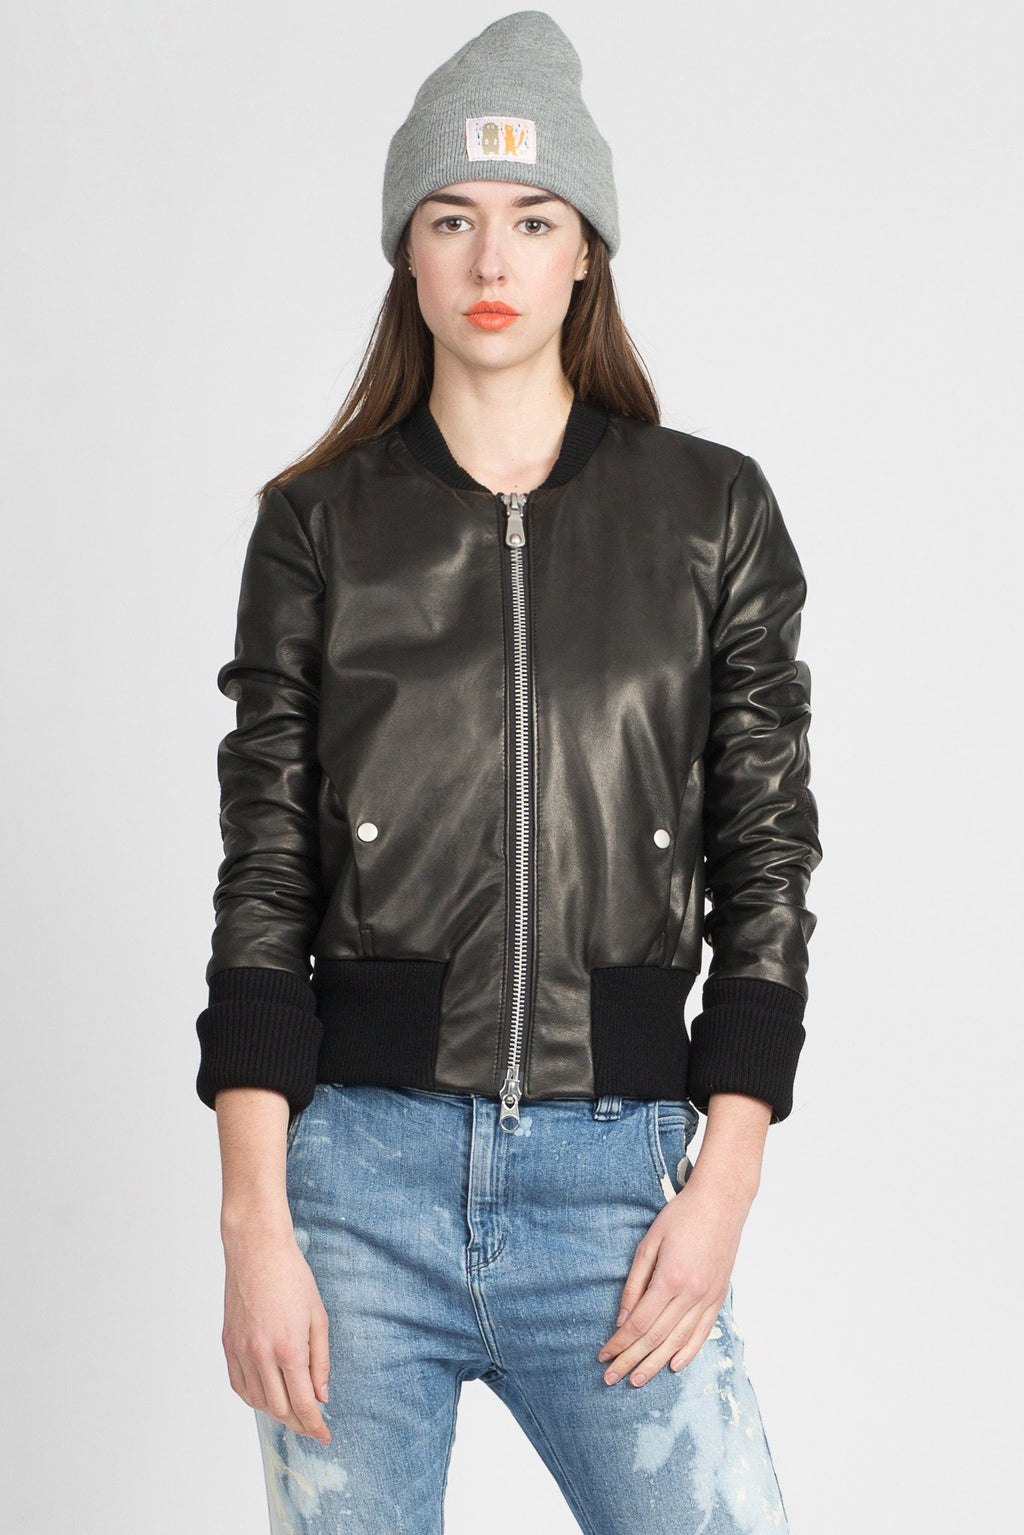 Snacku New Jersey Leather Bomber Jacket Makers Workshop